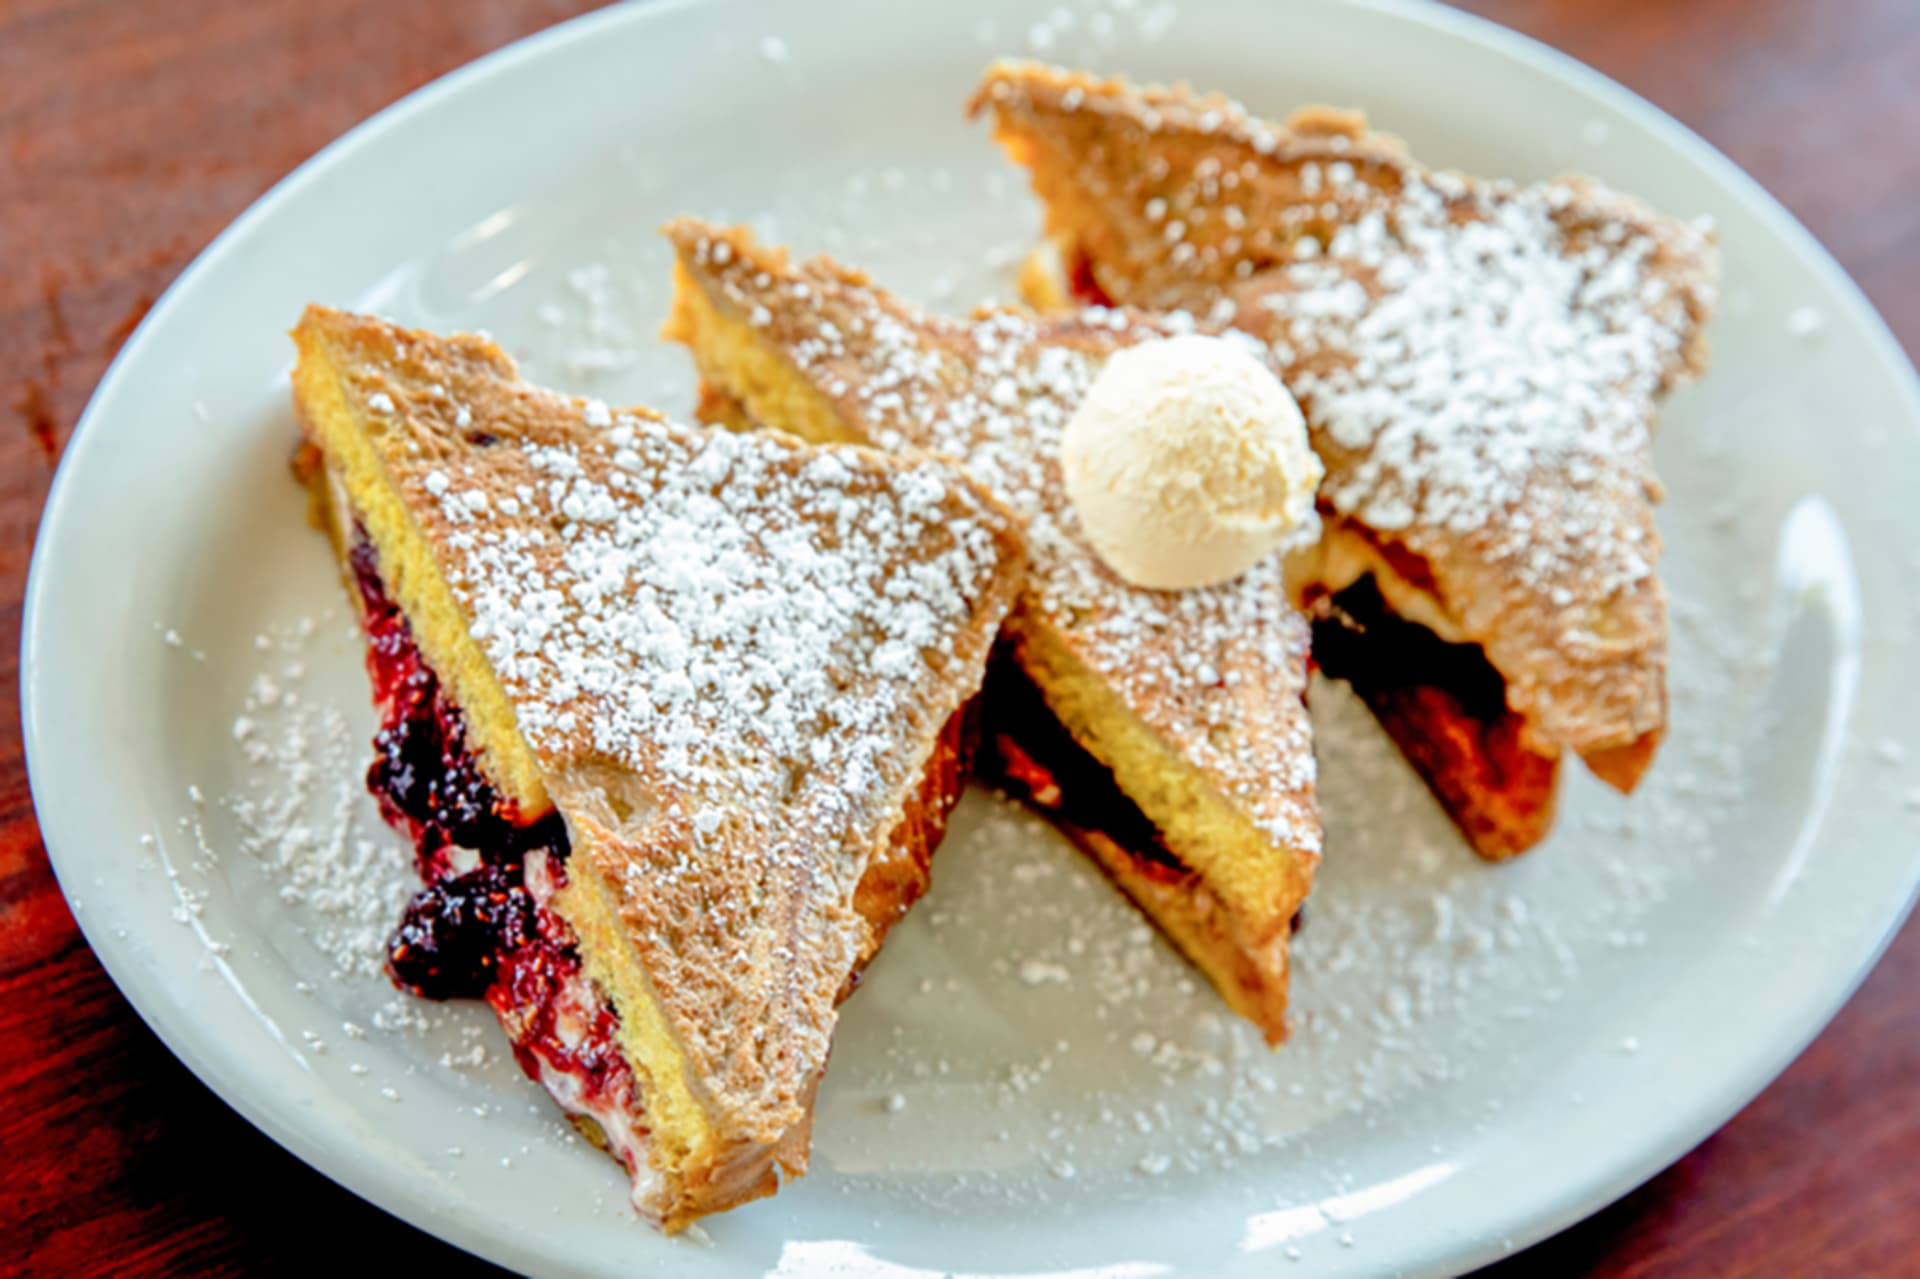 Raspberry or Caramel Cheesecake Stuffed French Toast